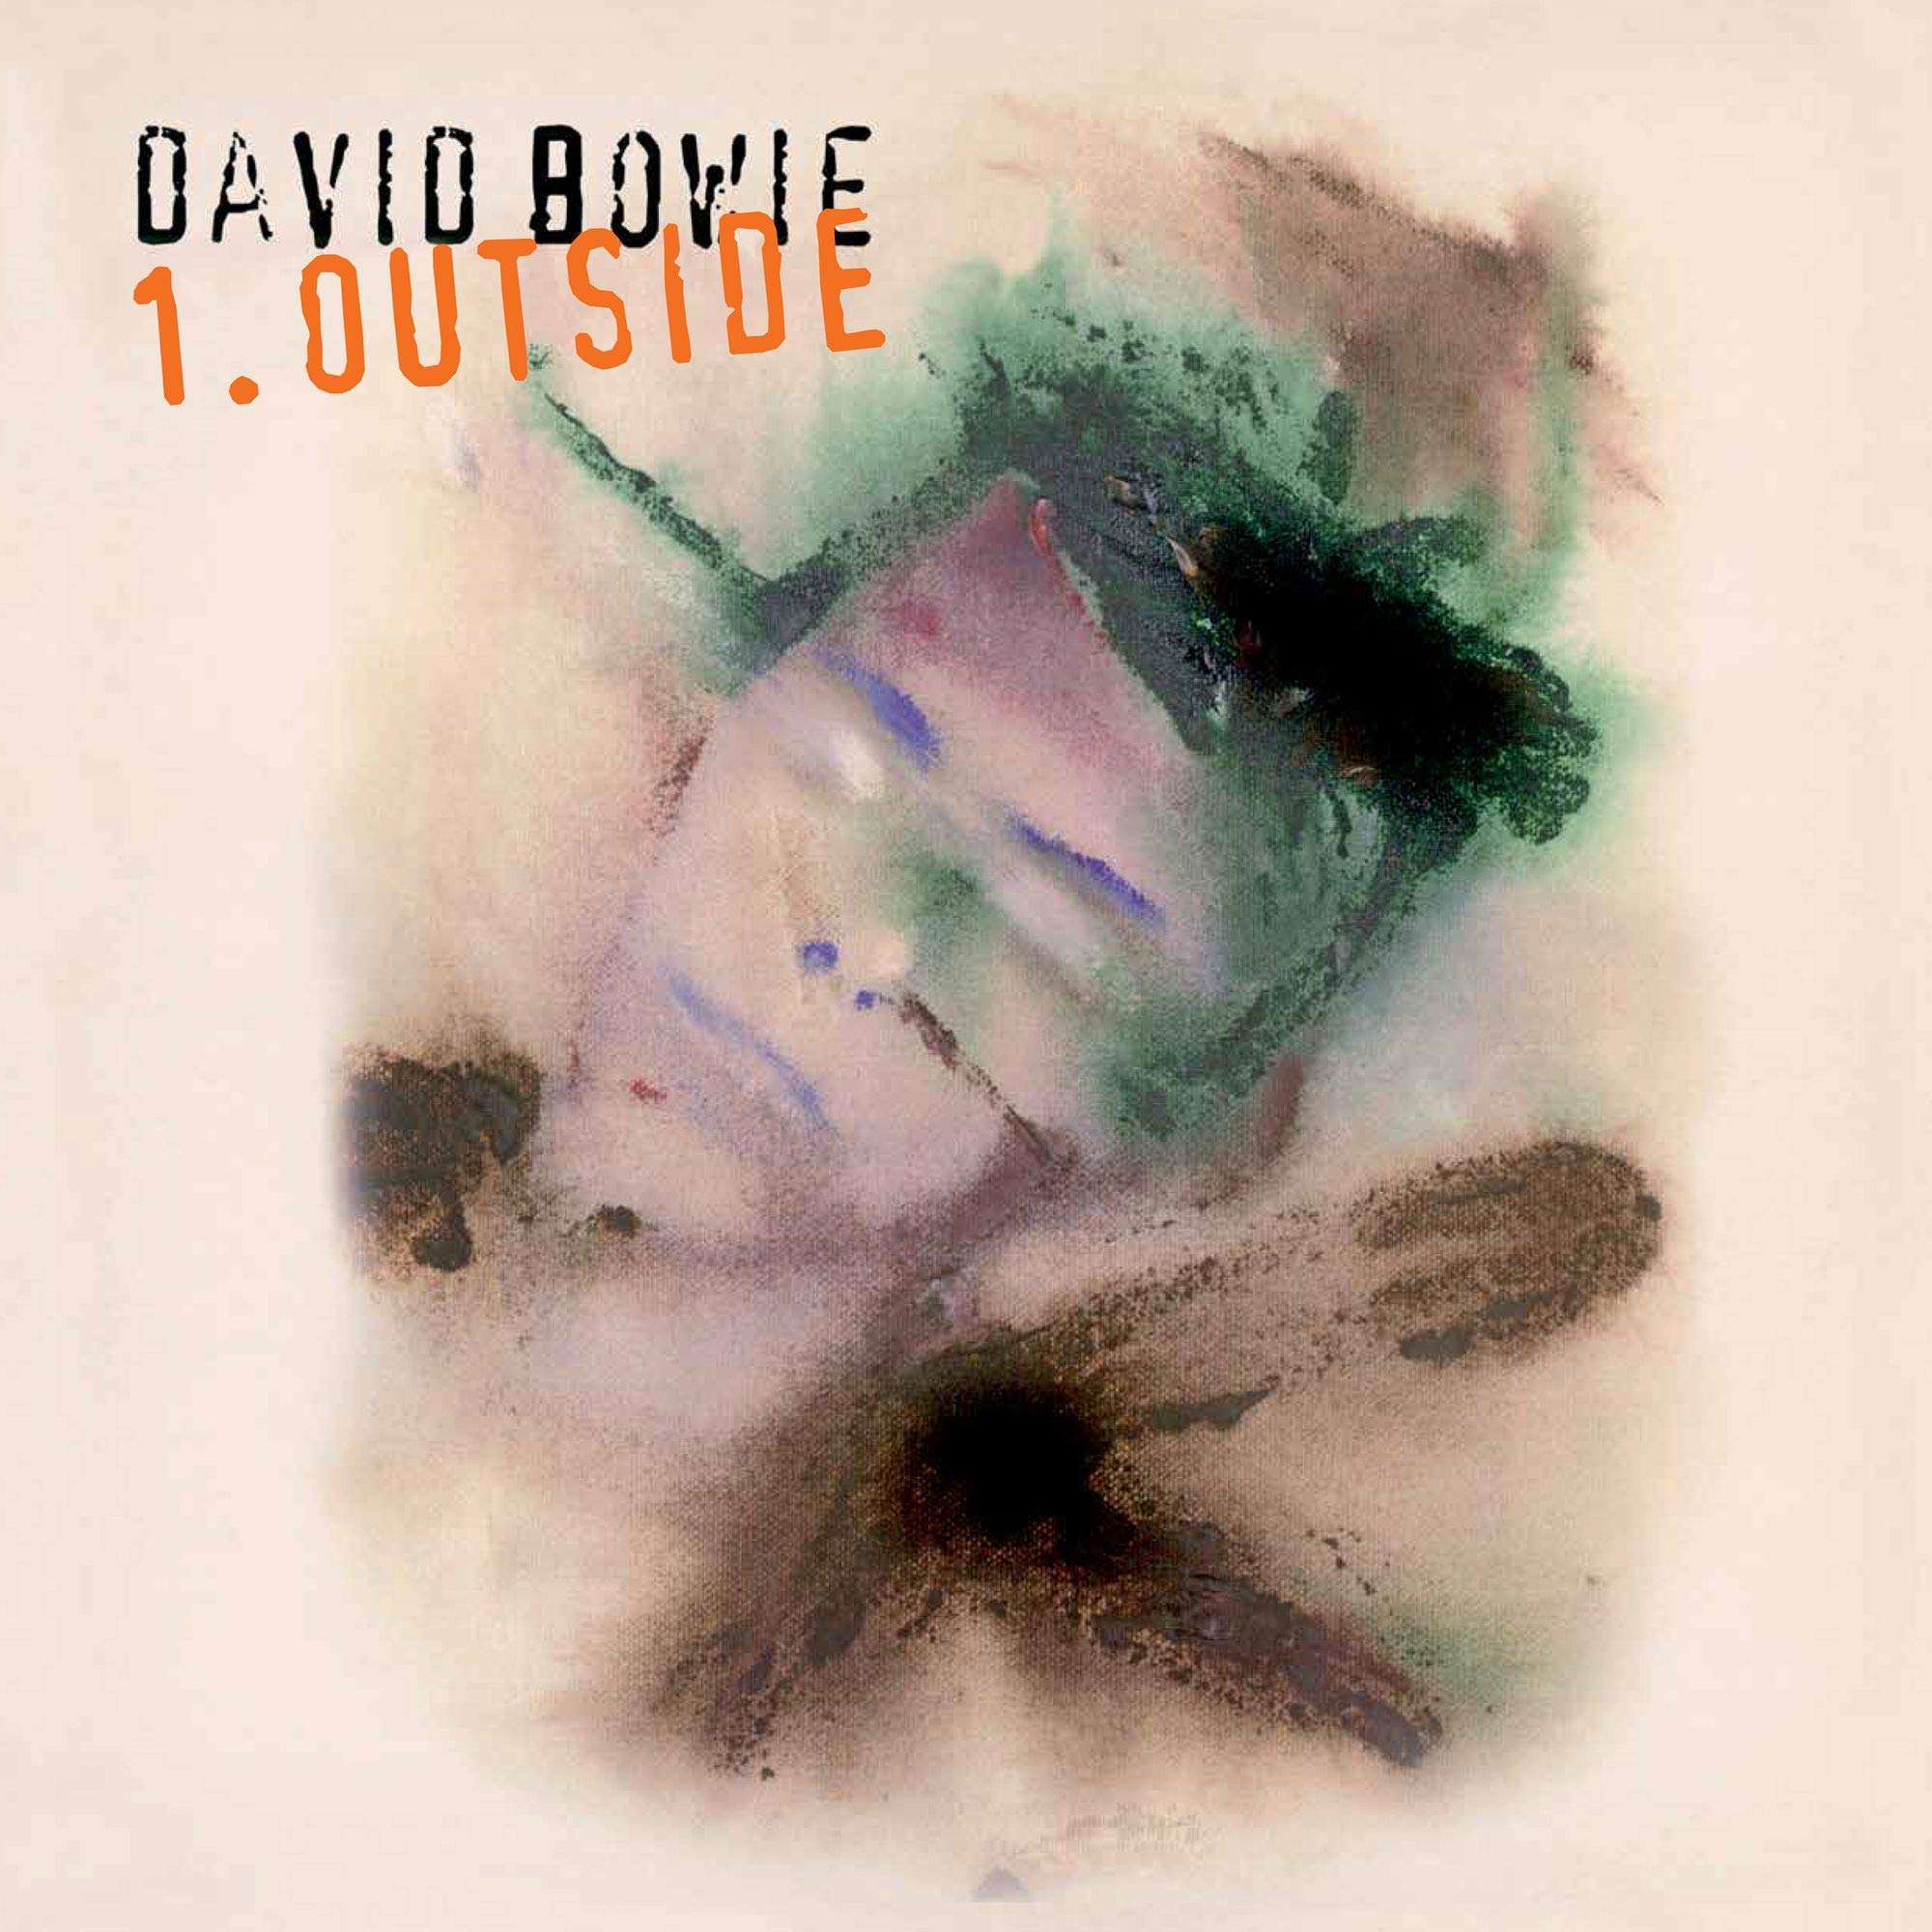 Vinilo : David Bowie - 1. Outside (180 Gram Vinyl, Limited Edition, Colored Vinyl, Audiophile, Blue)